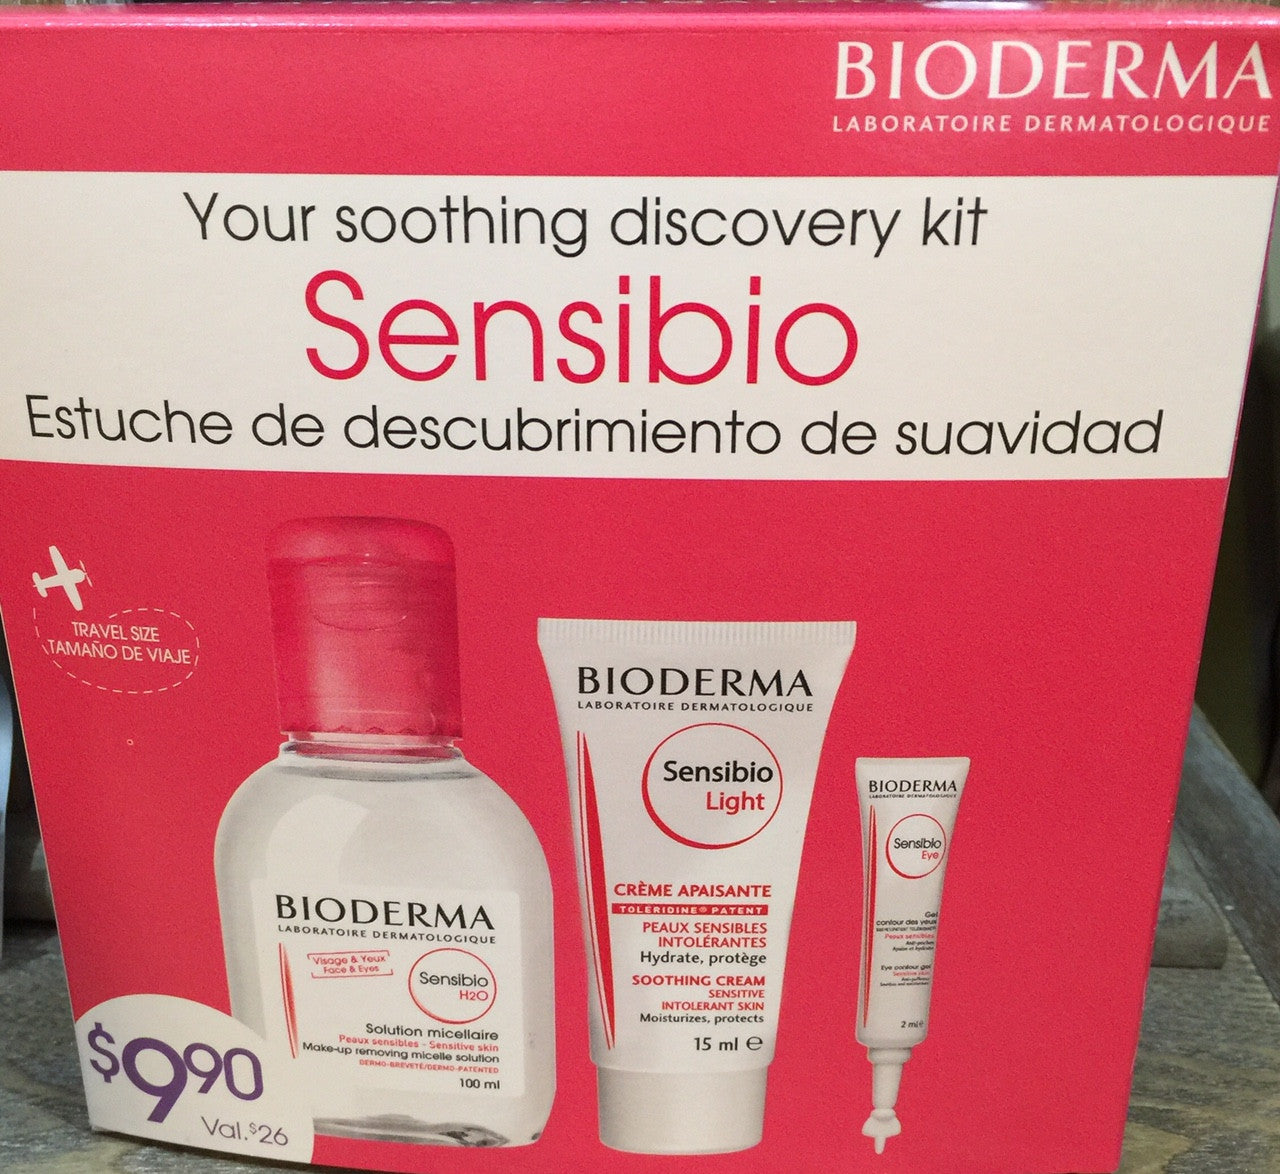 Bioderma Your Soothing Discovery Kit Sensibio | New London Pharmacy